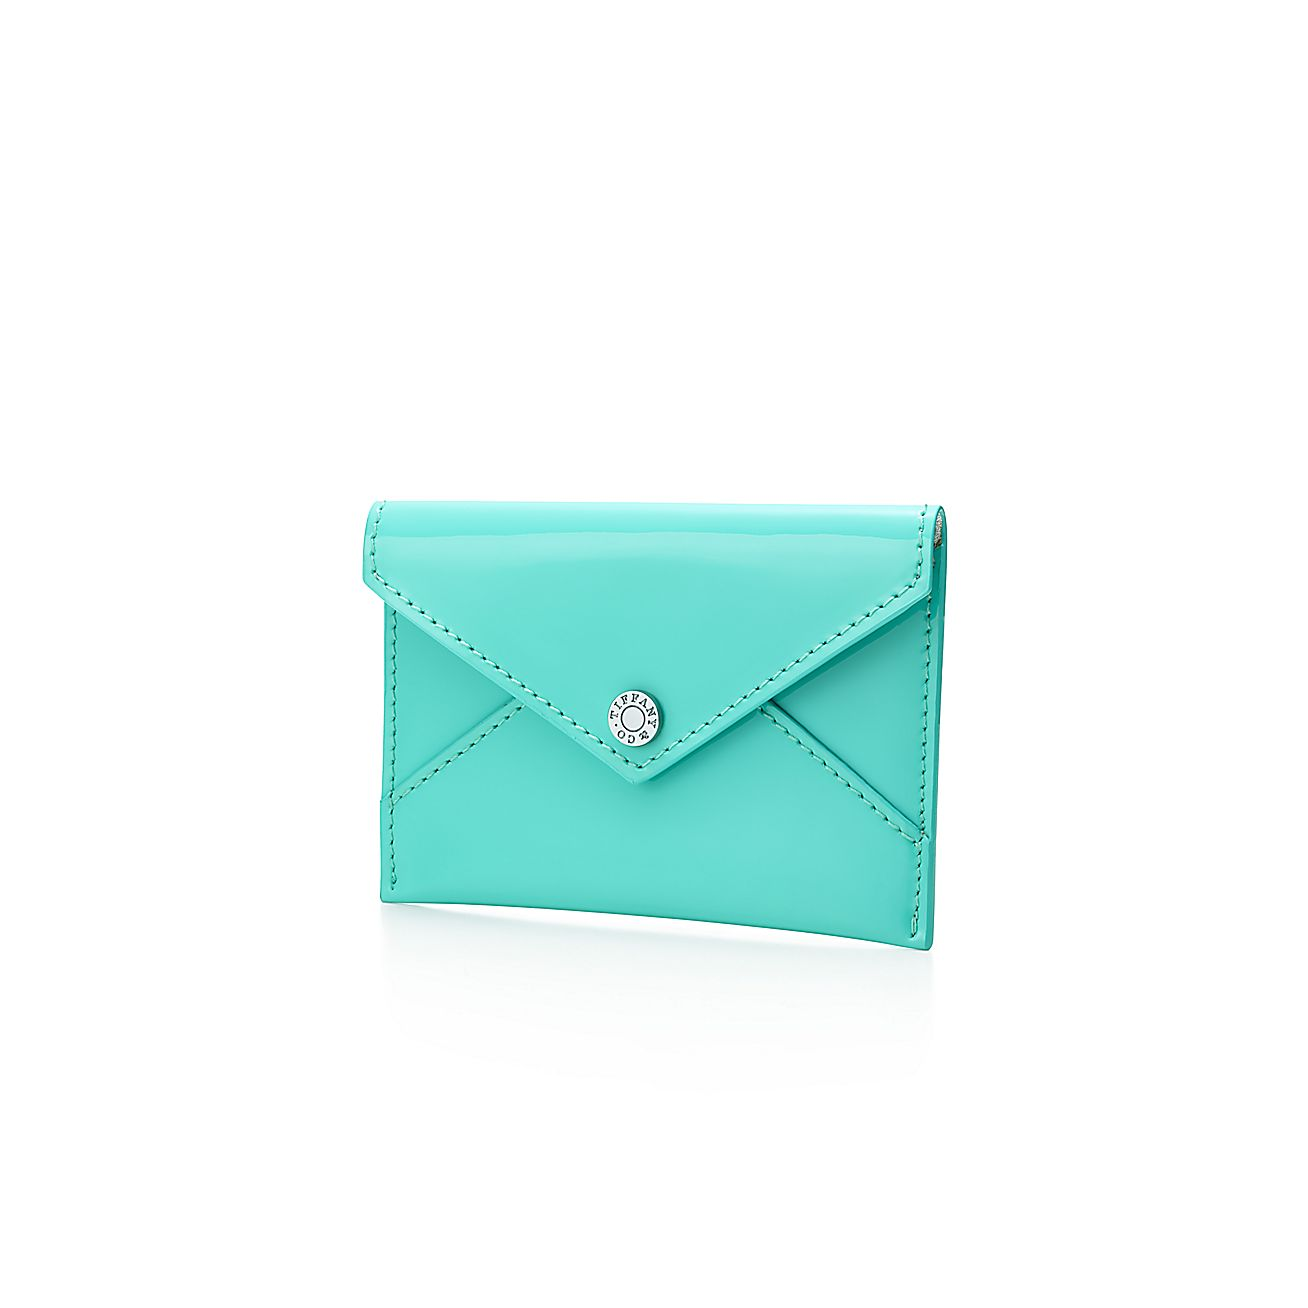 Patent Leather Envelope